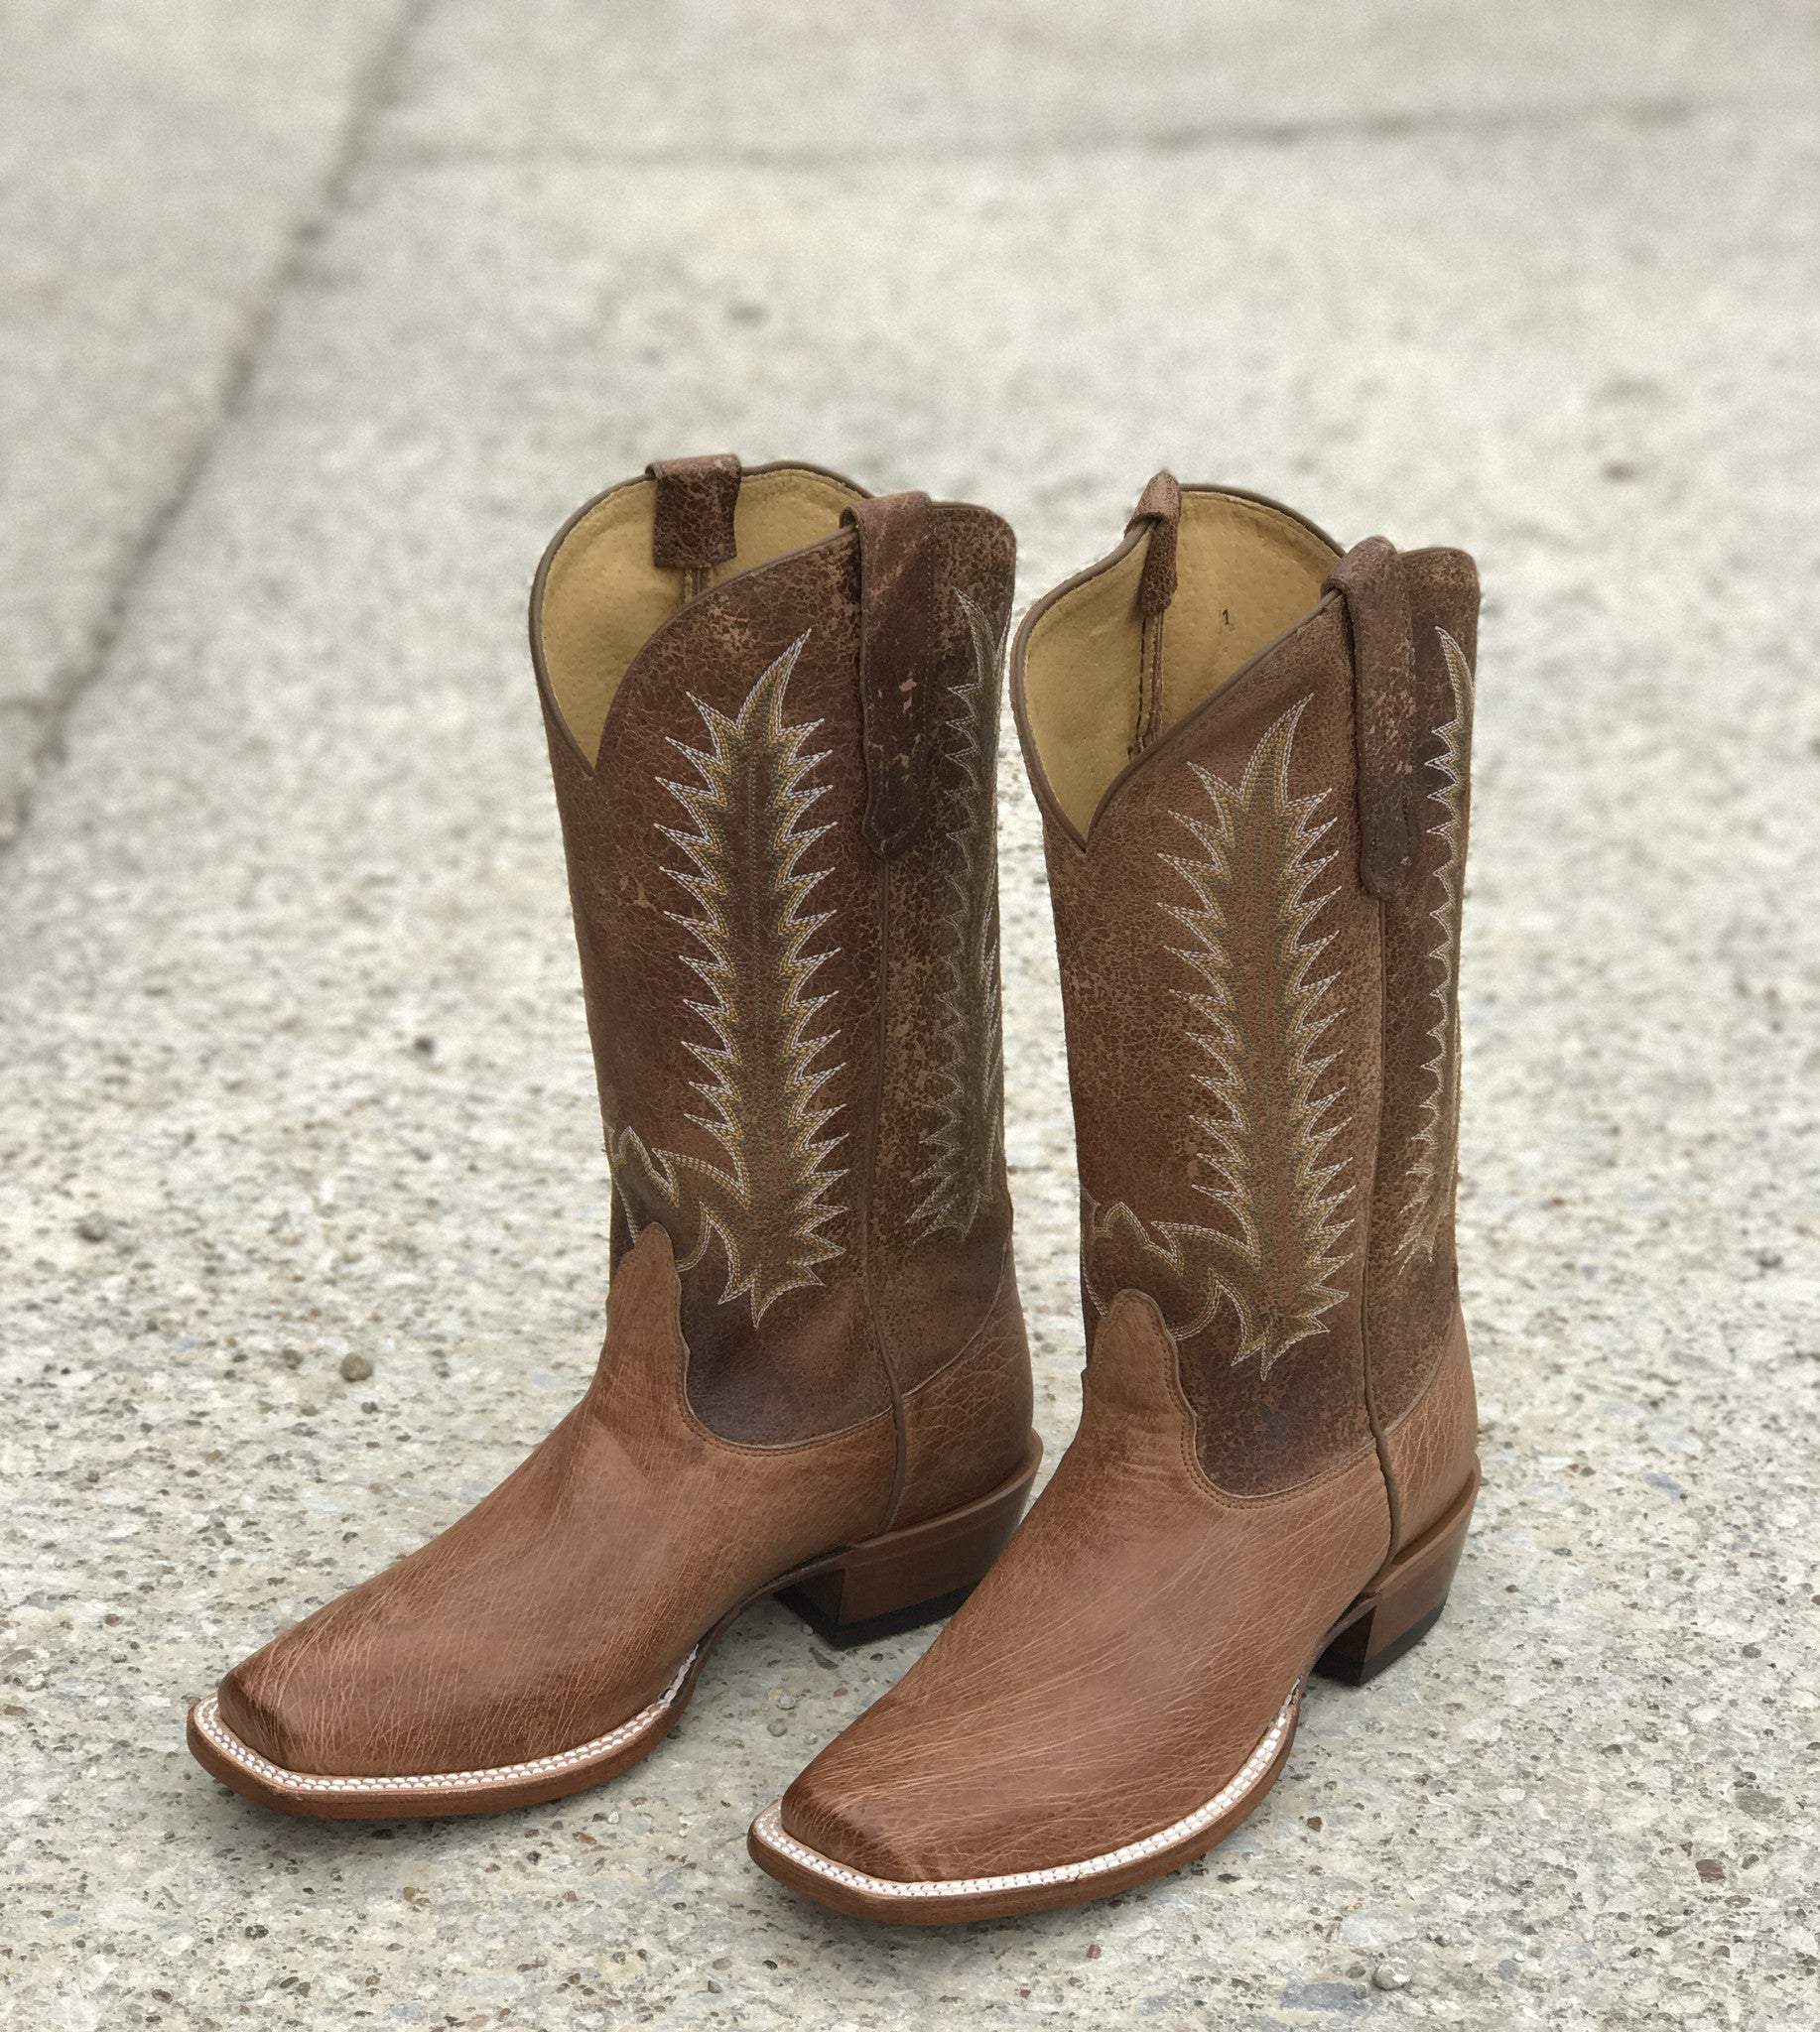 661e618f69a Nocona Tan Vintage Smooth Ostrich Men's Boot - Lazy J Ranch Wear